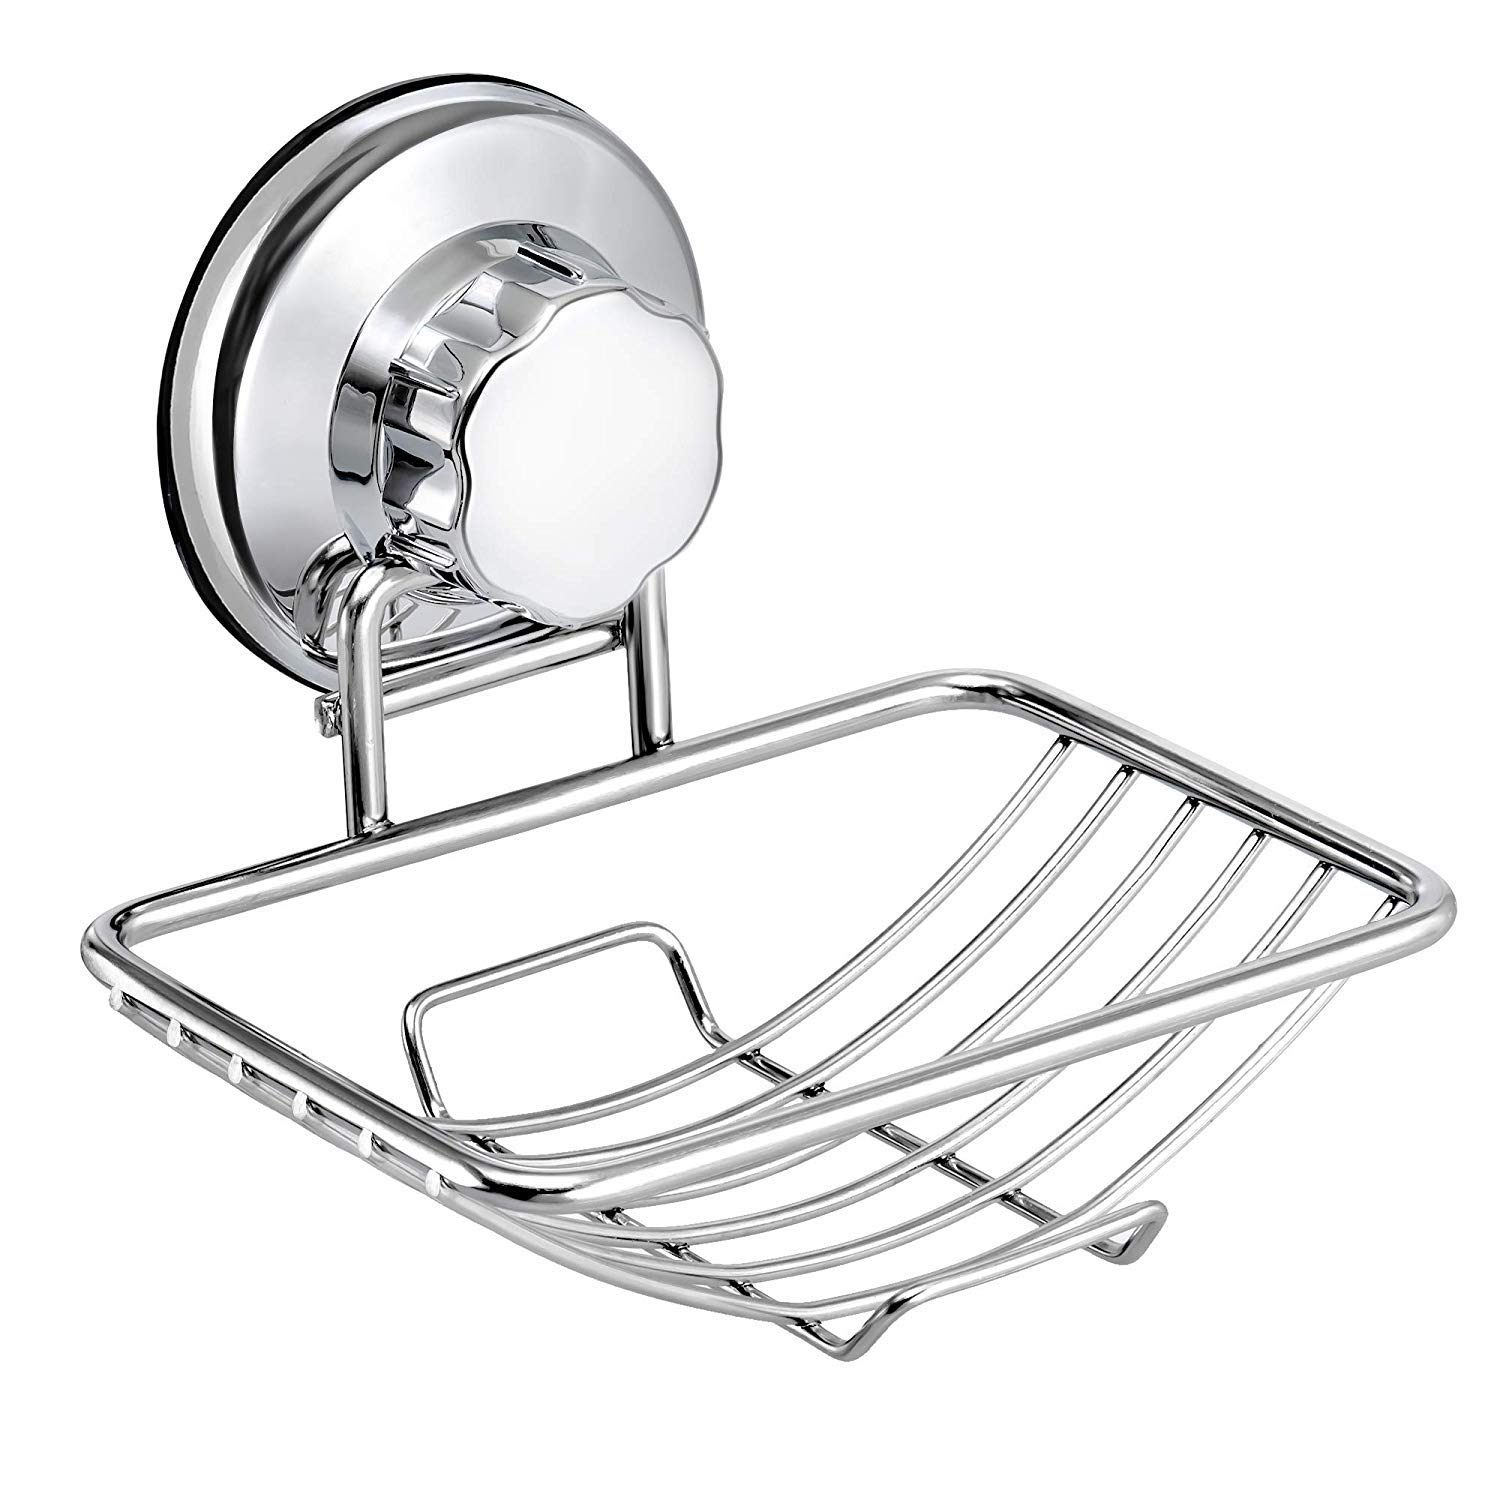 iPEGTOP Suction Soap Dish Holder, Wall Mounted Bar Soap Saver Sponges Holder, for Bathroom Kitchen Shower Tub - Rustproof Stainless Steel by iPEGTOP